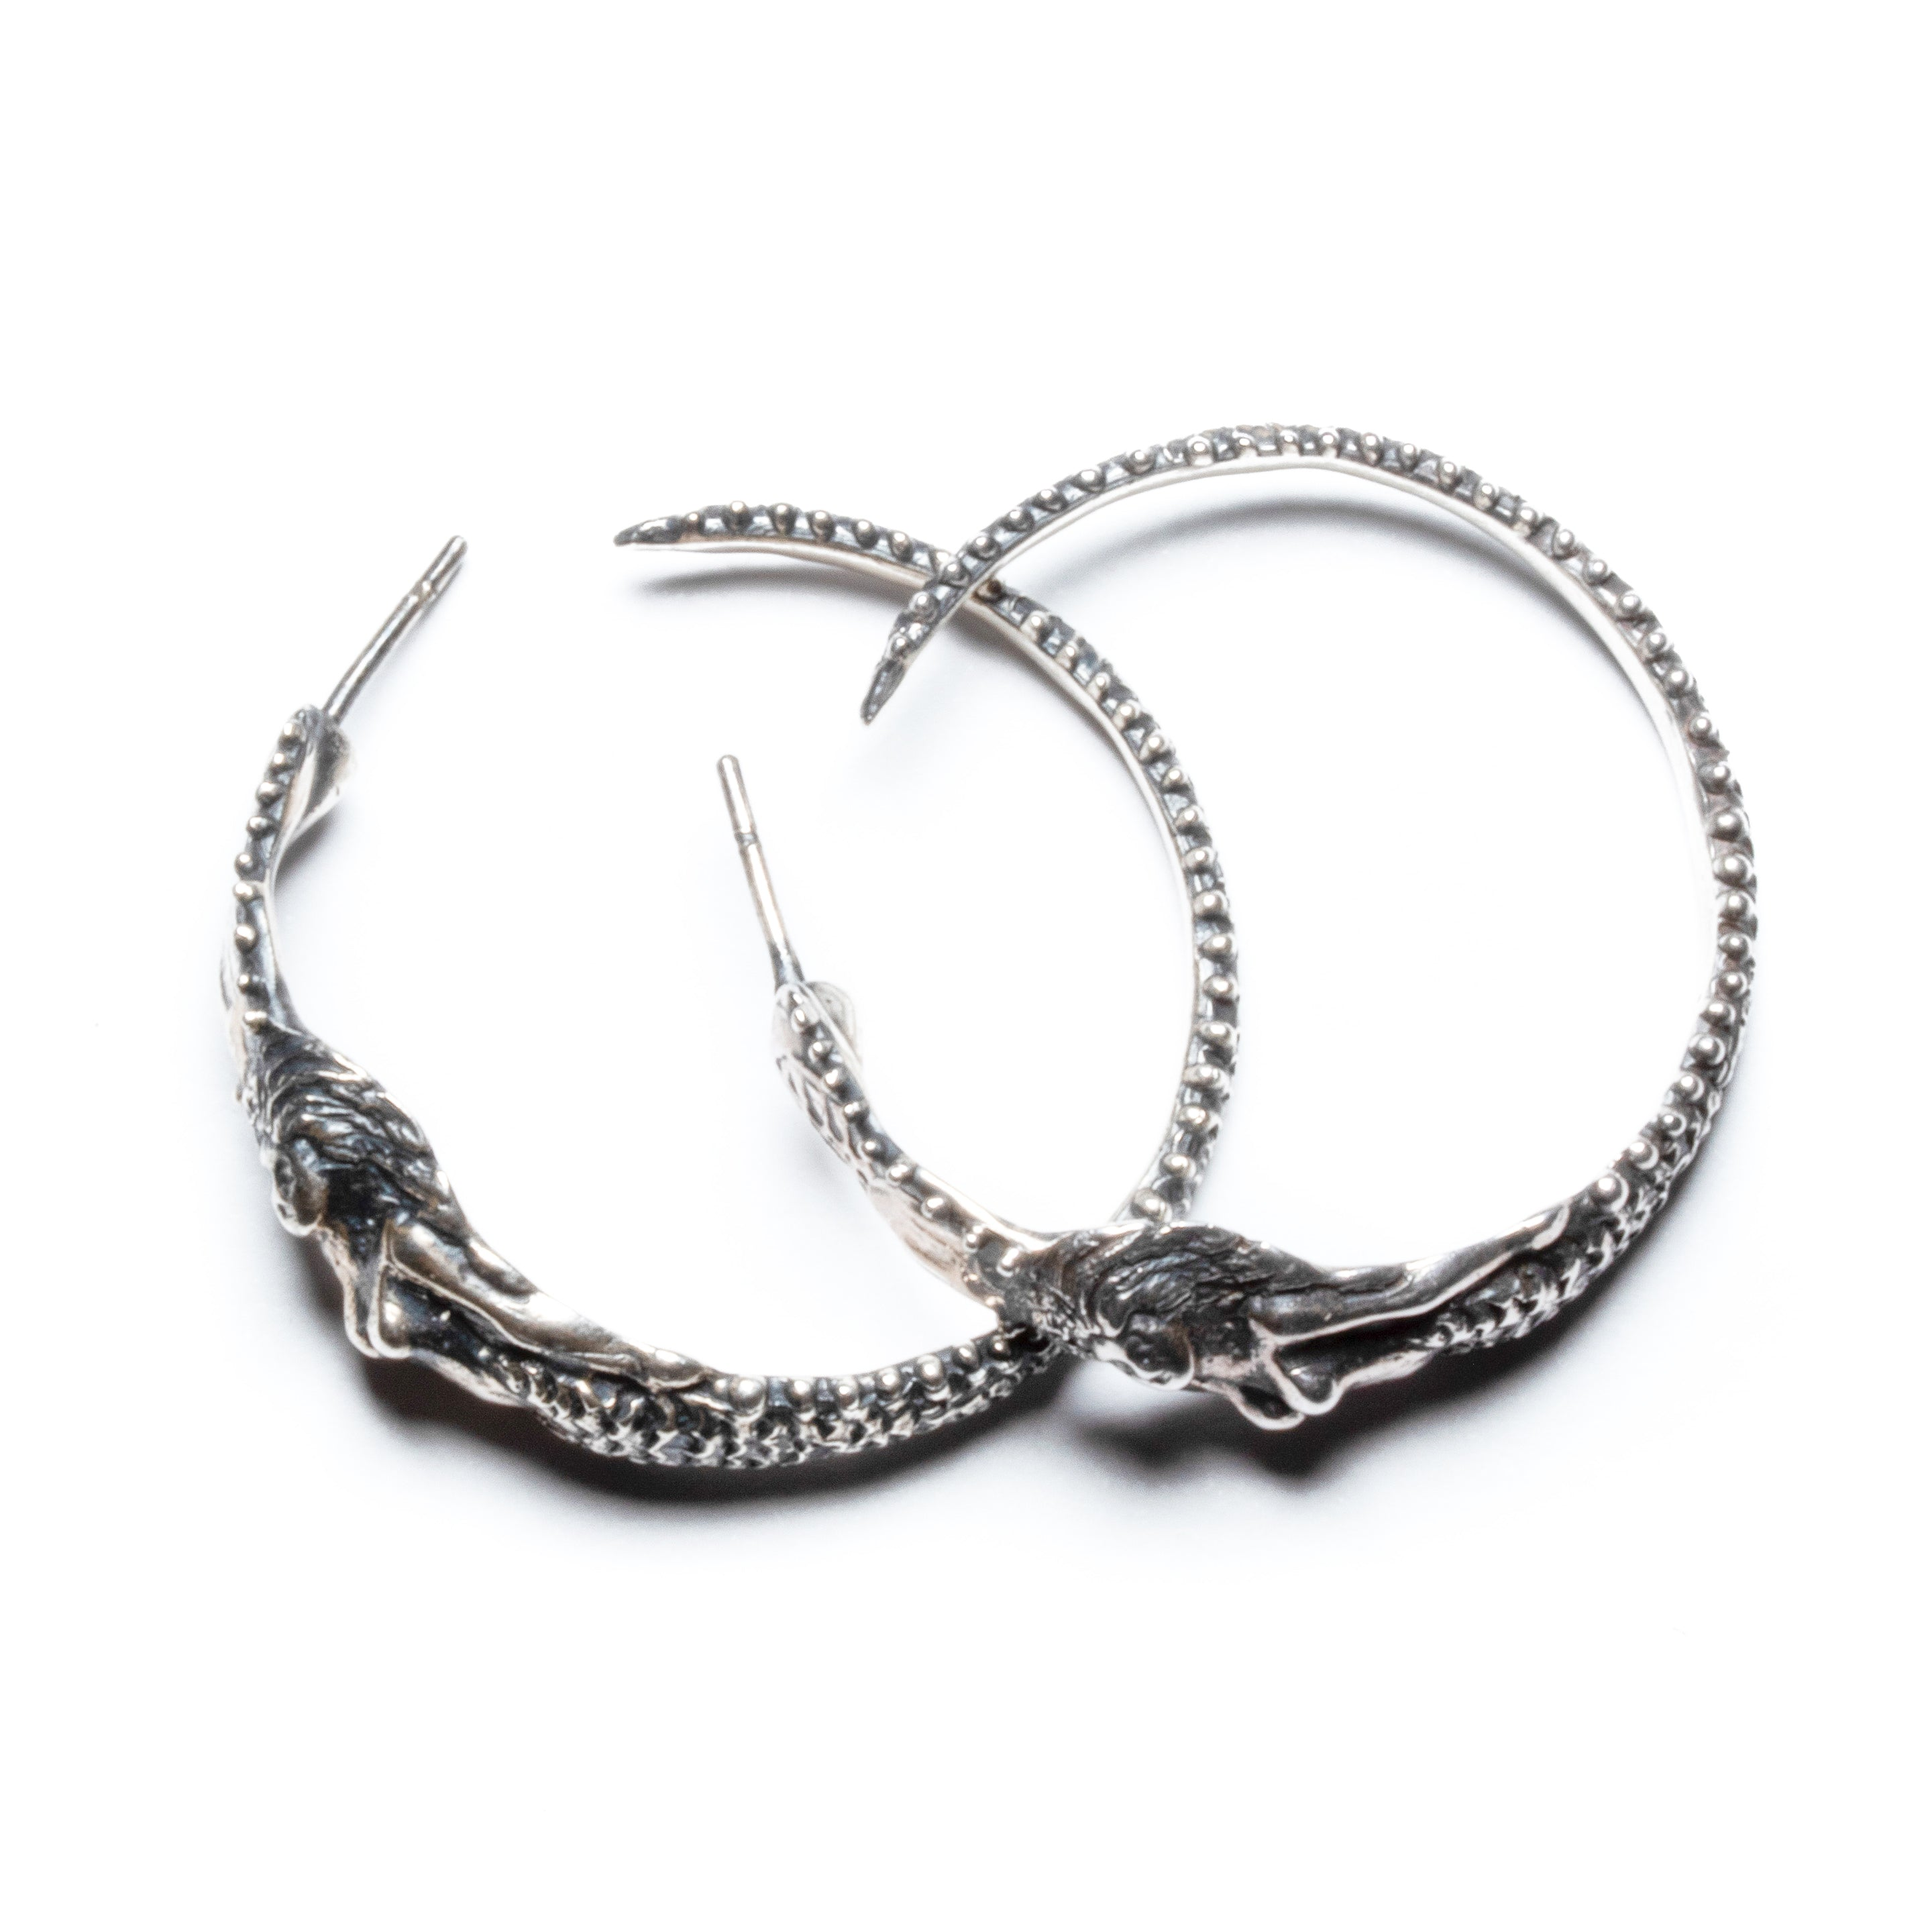 Angitia Mesi Hoop earrings